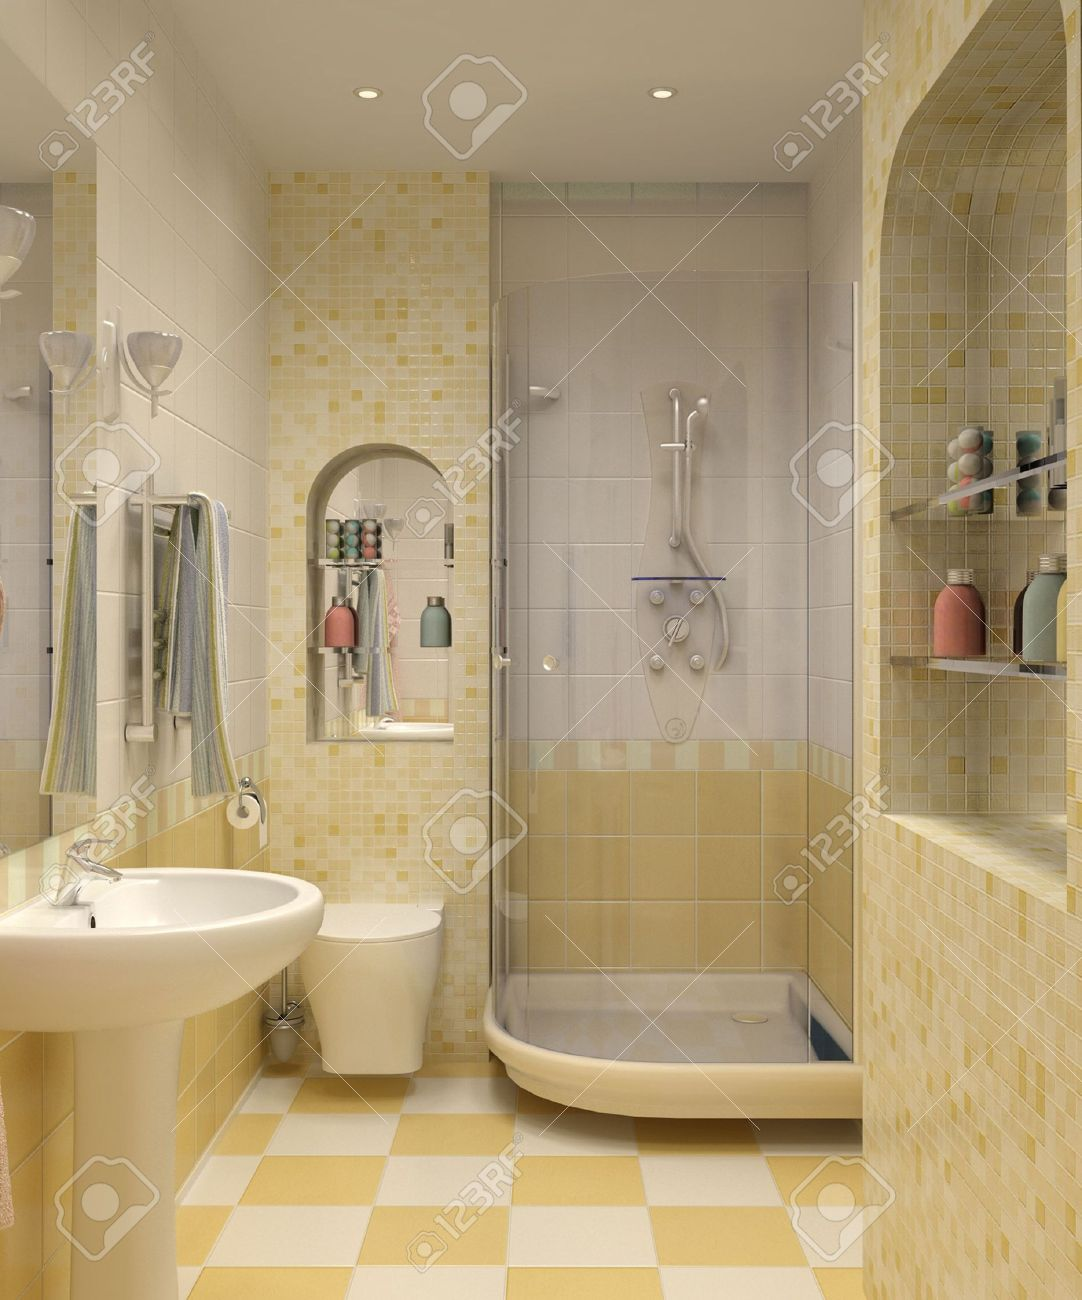 3D Bathroom With Toilet And Shower In The Yellow Tile Stock Photo   7124577